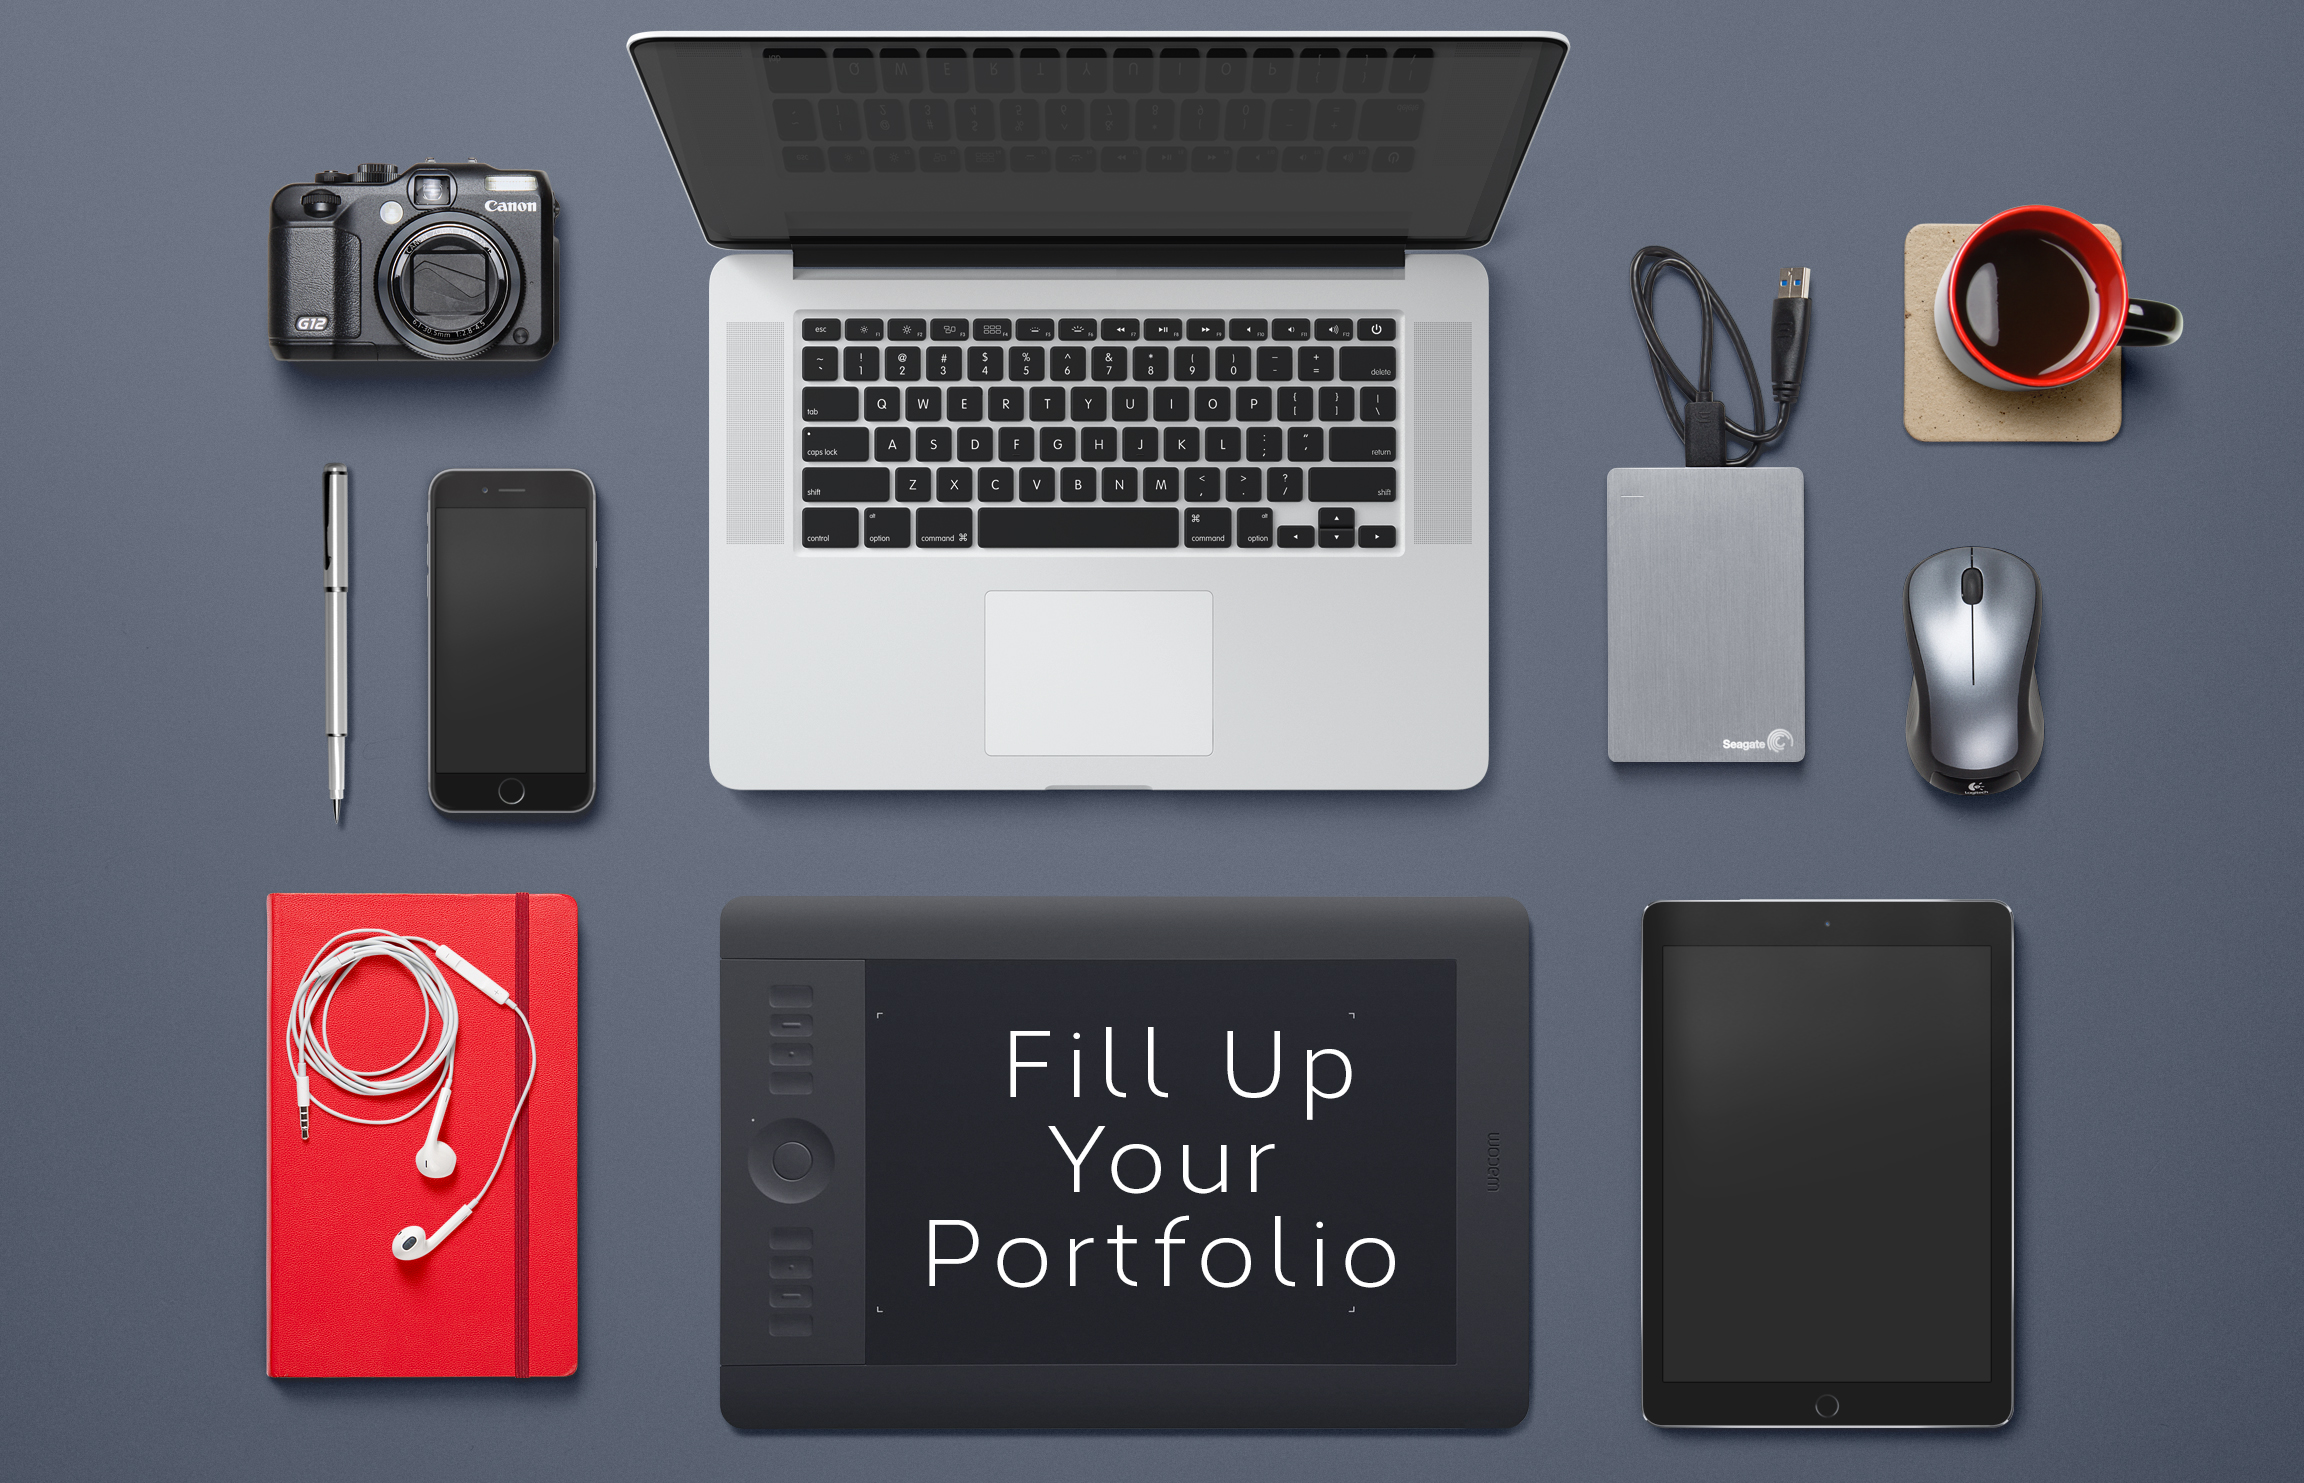 fill up your portfolio